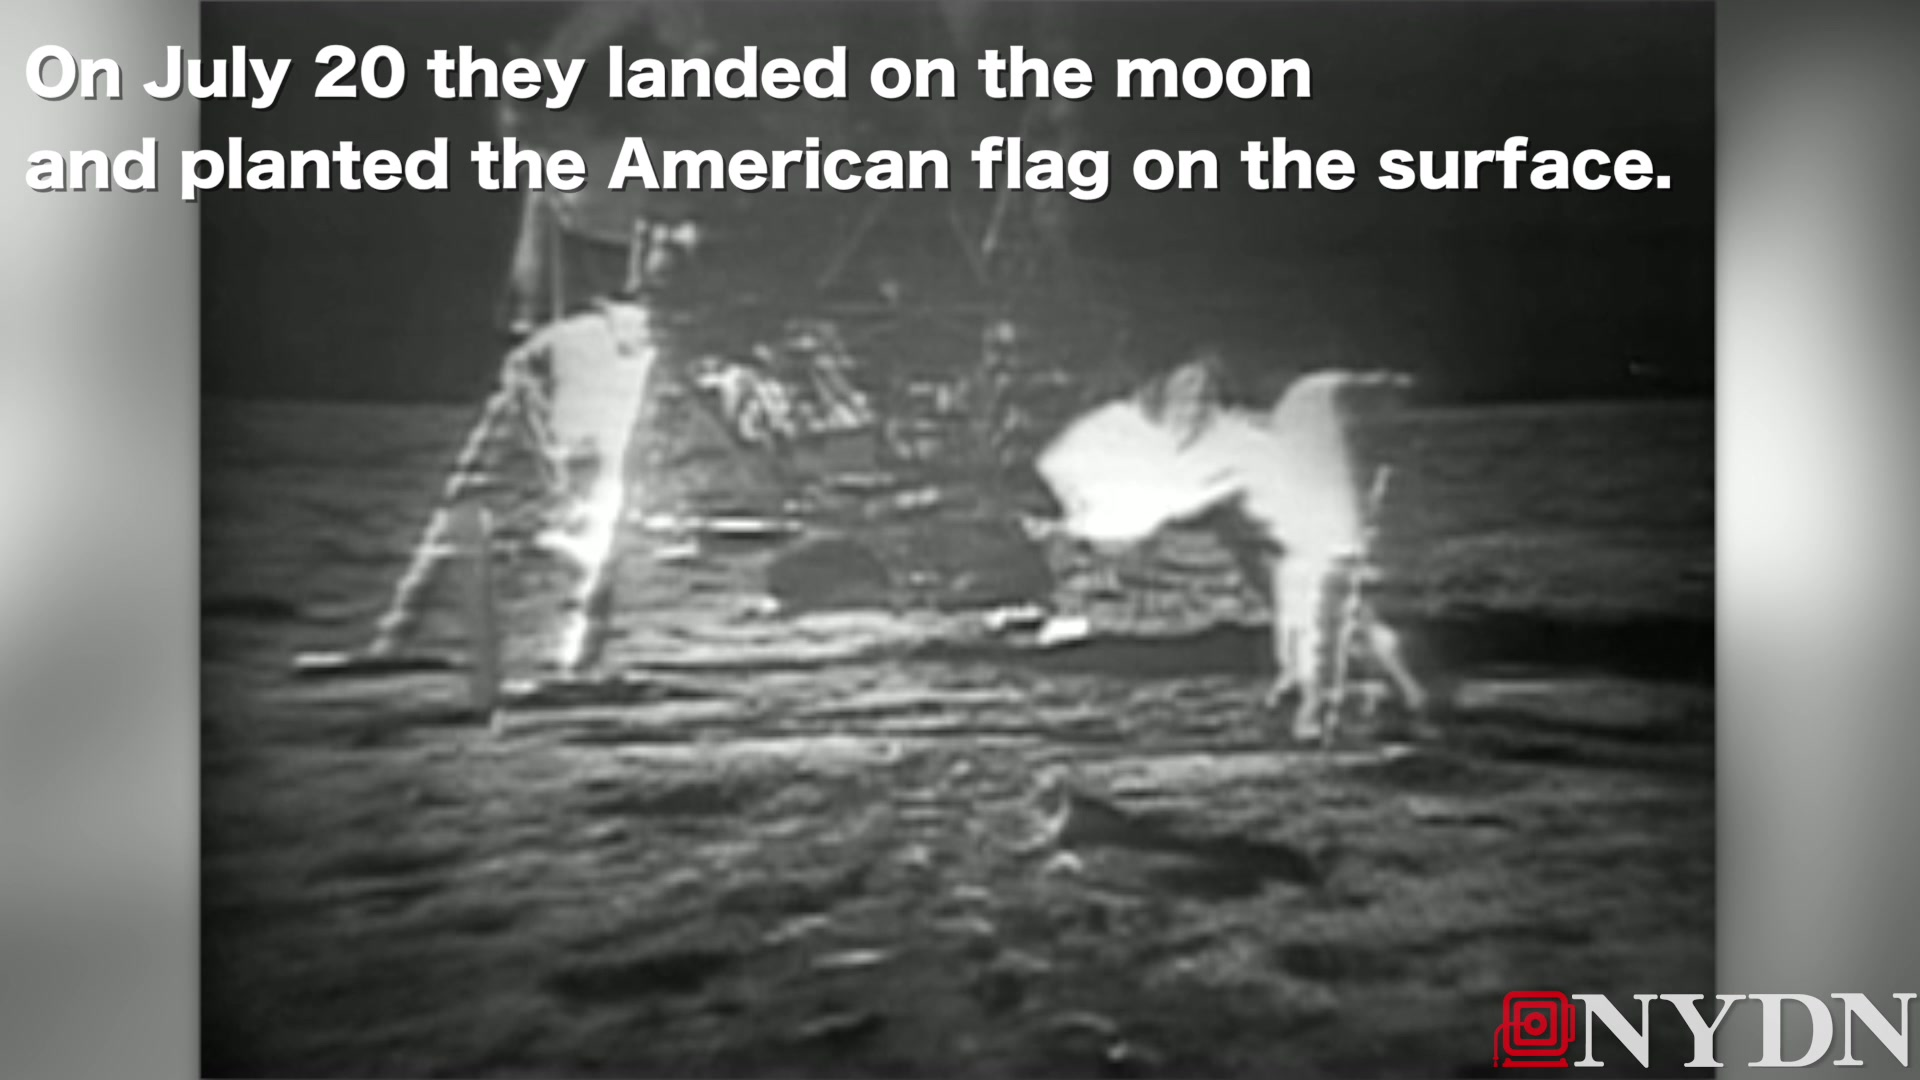 The Moon Landing: The Journey of Apollo 11